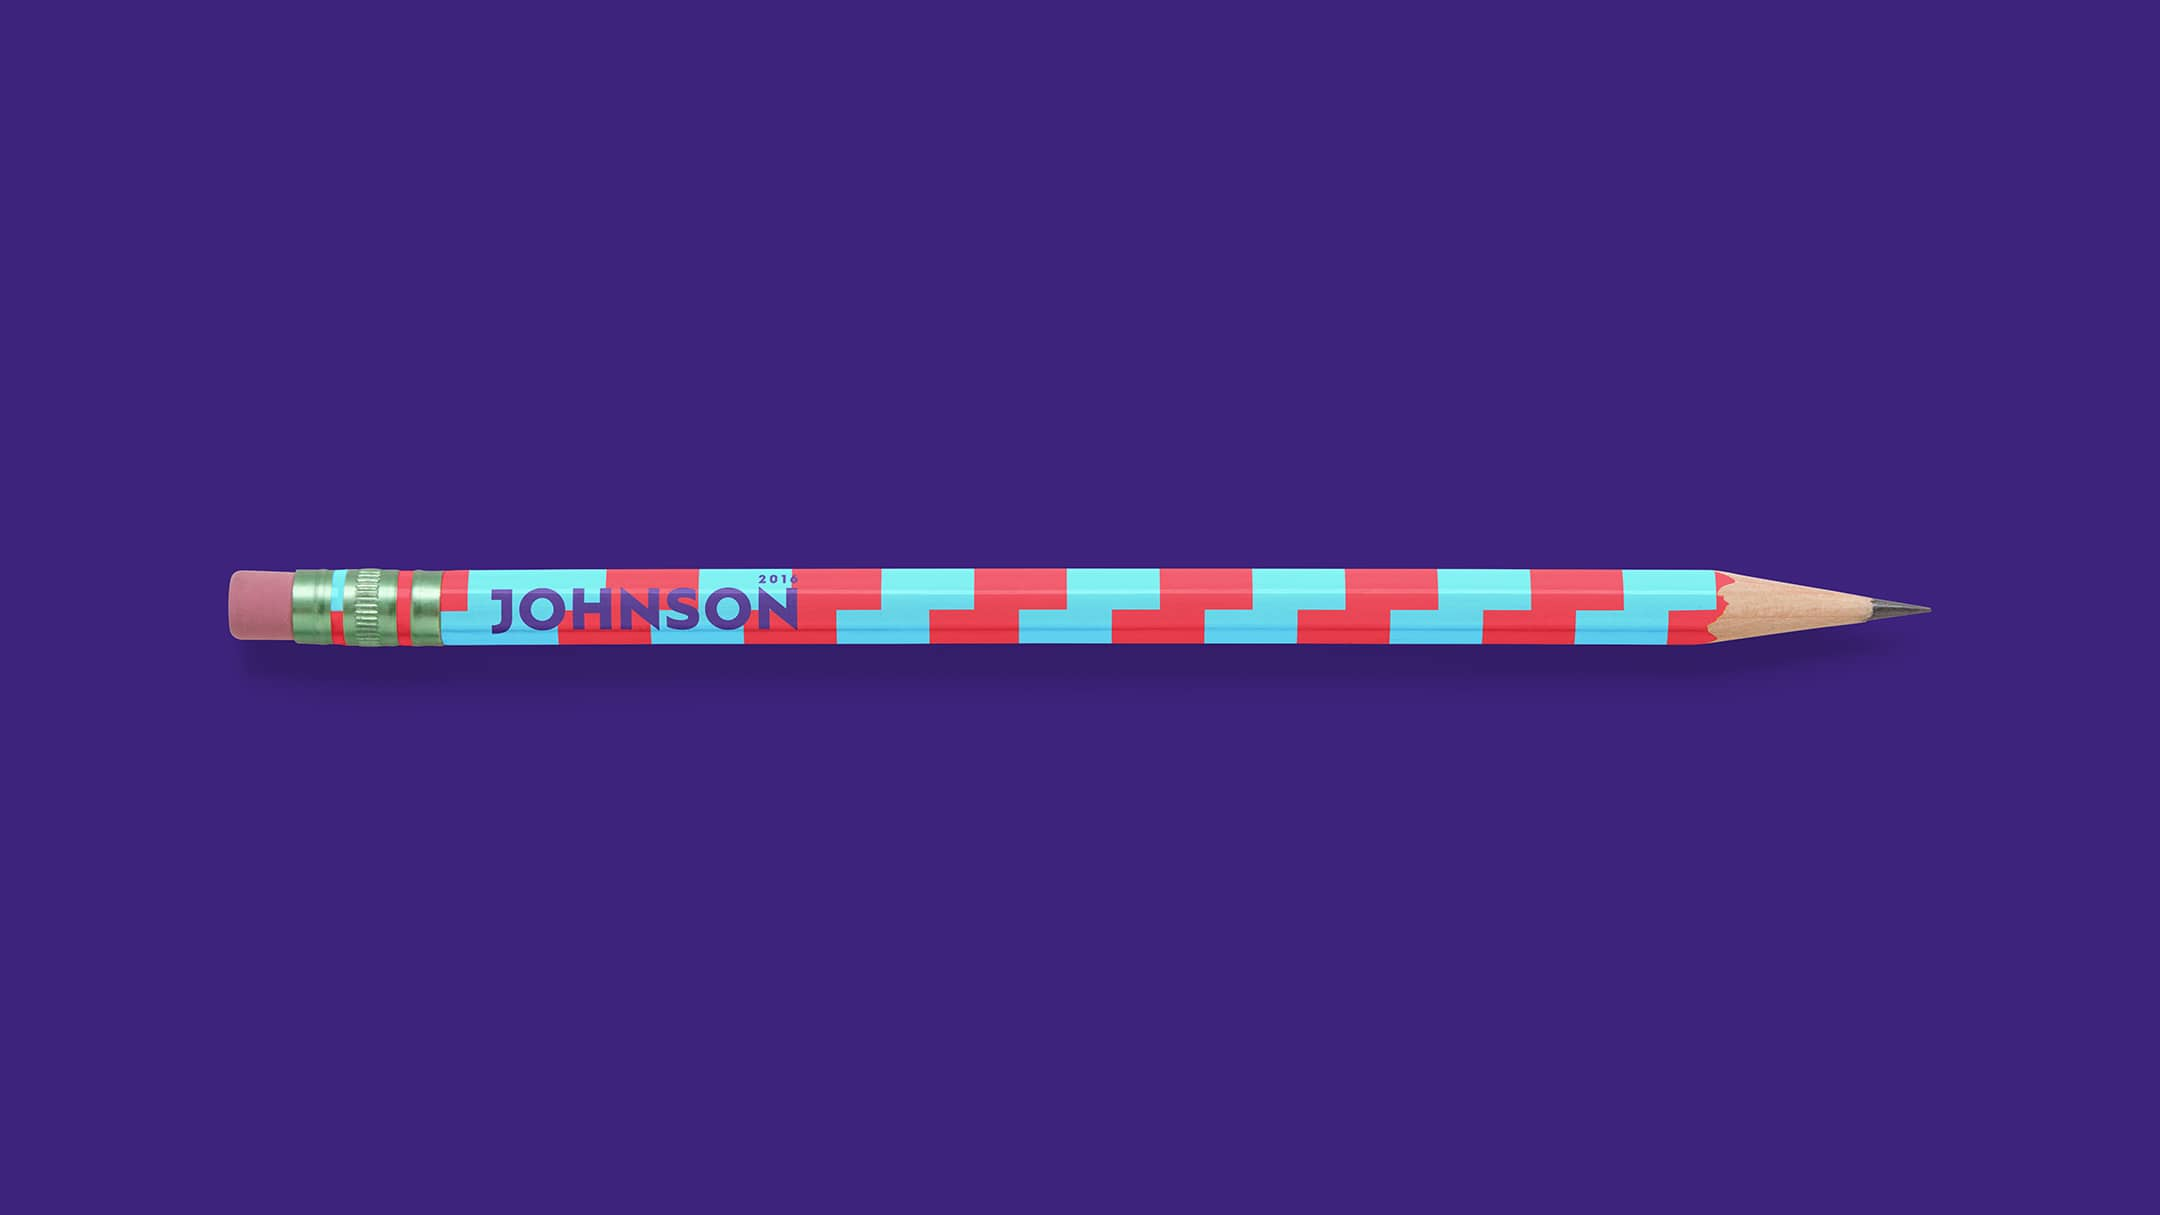 Gary Johnson spec campaign branded pencil